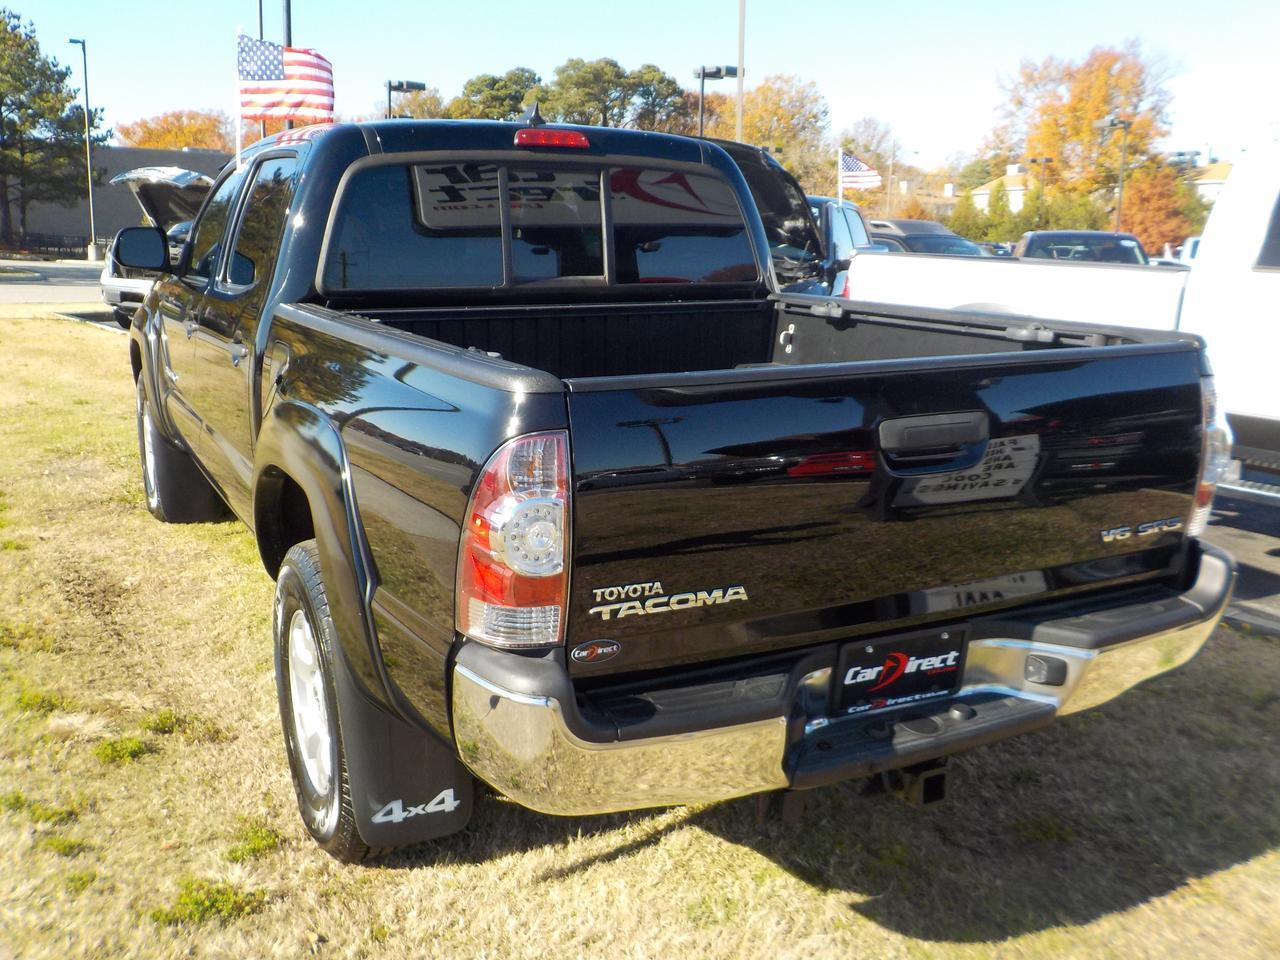 2015 TOYOTA TACOMA SR5 4.0L 4X4 CREW CAB, CARFAX ONE OWNER, BLUETOOTH, TOW PACKAGE, BACKUP CAMERA!! Virginia Beach VA